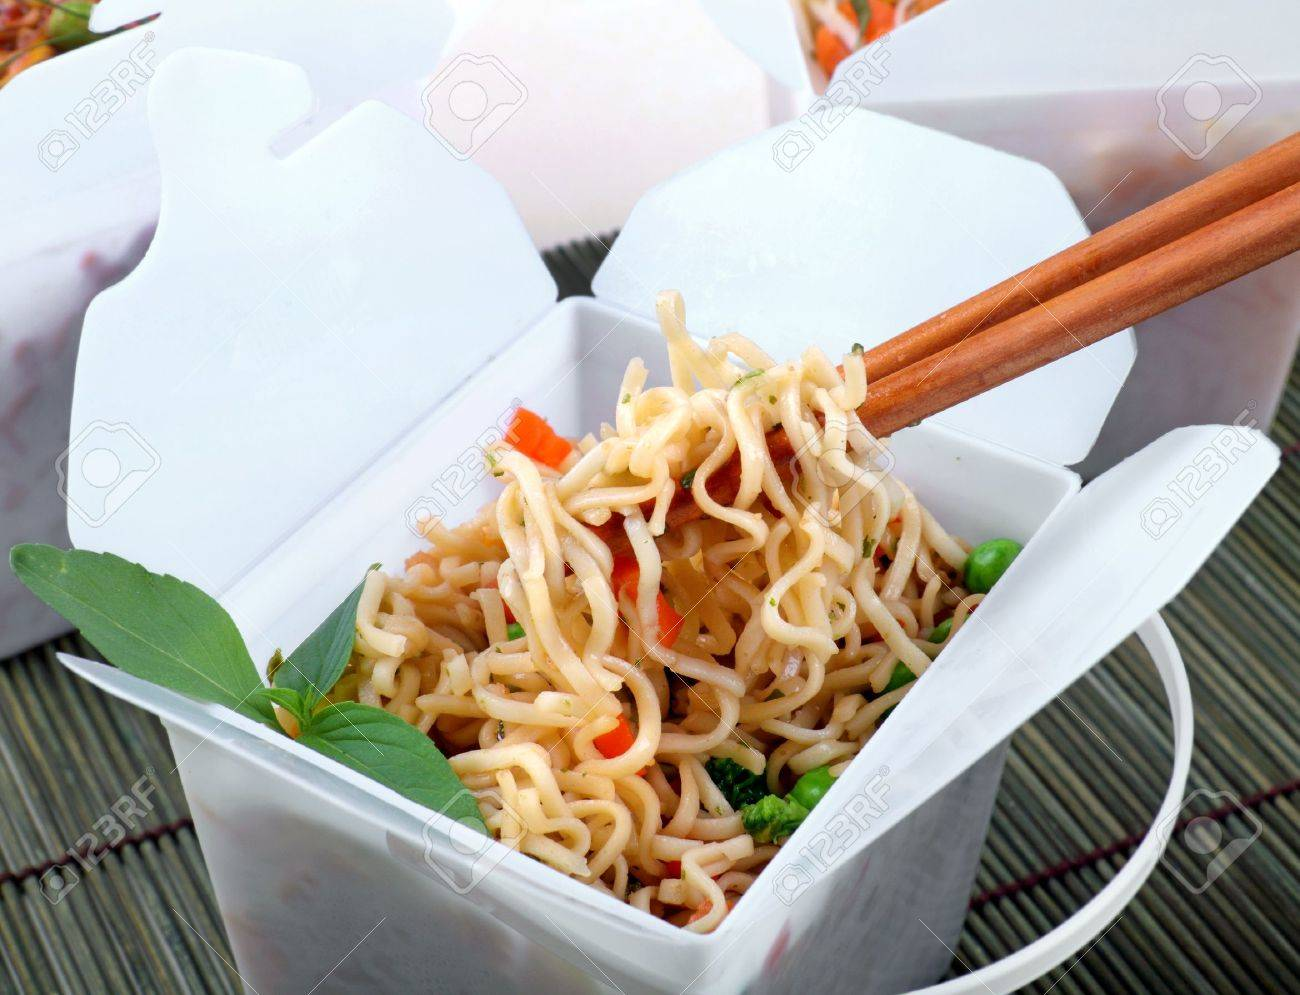 Take away egg noodles on chopsticks in a take away container. - 7732114